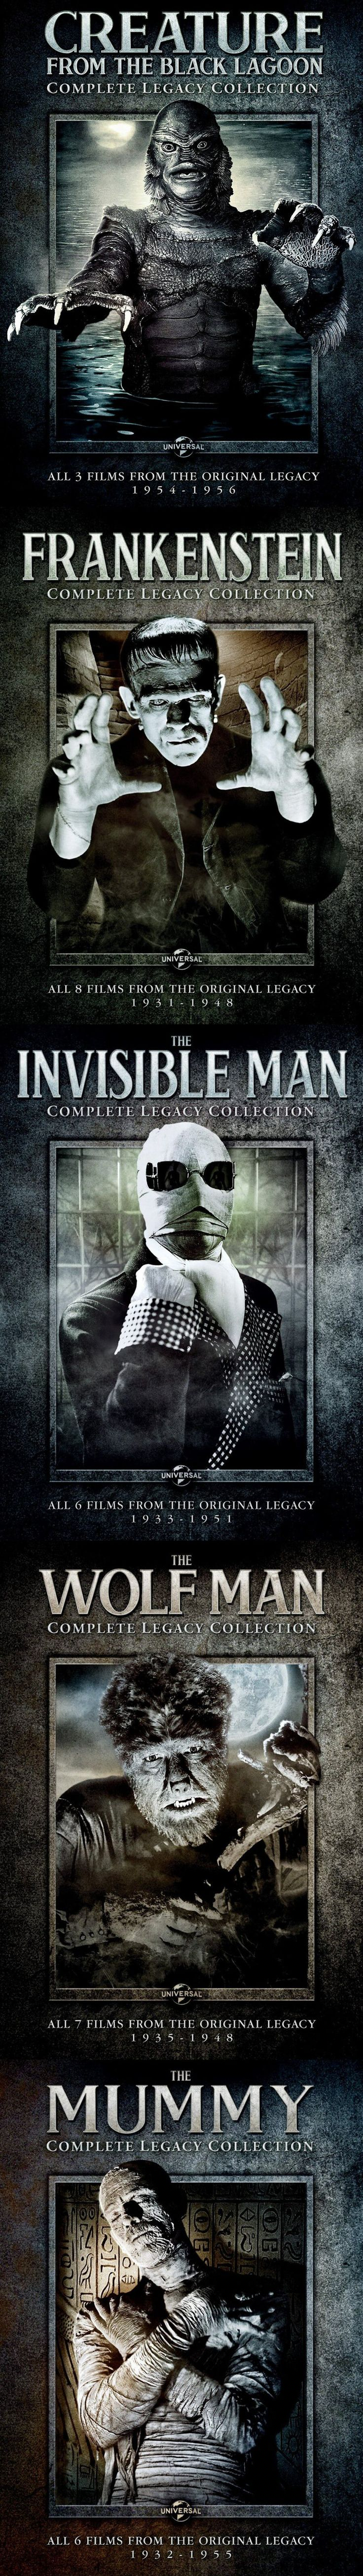 Universal Classic Monsters: The Complete 30-Film Collection...want and need this...need to find!!!